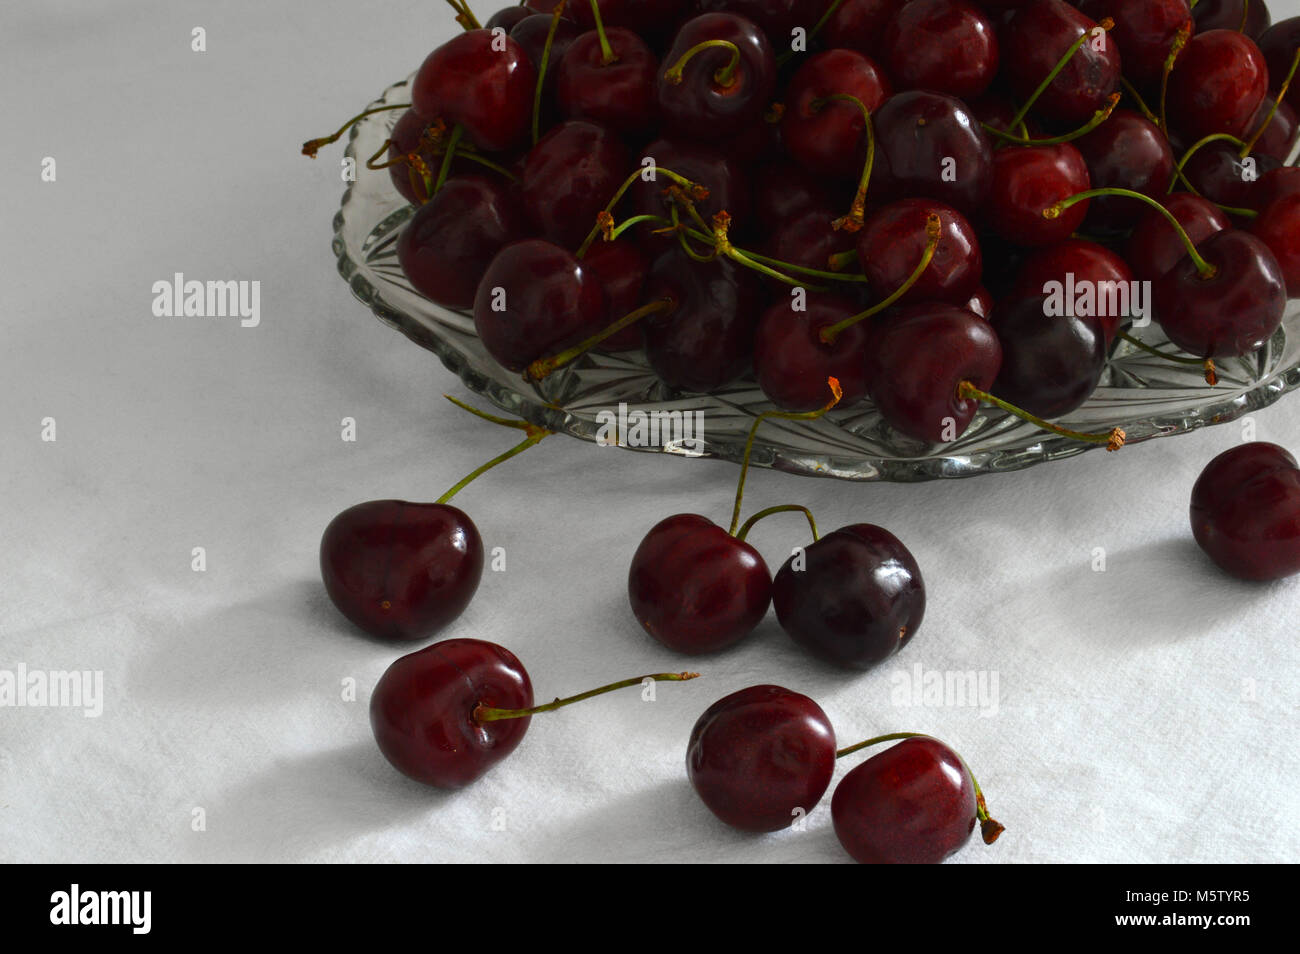 still life with a glass plate with red cherries on white background - Stock Image